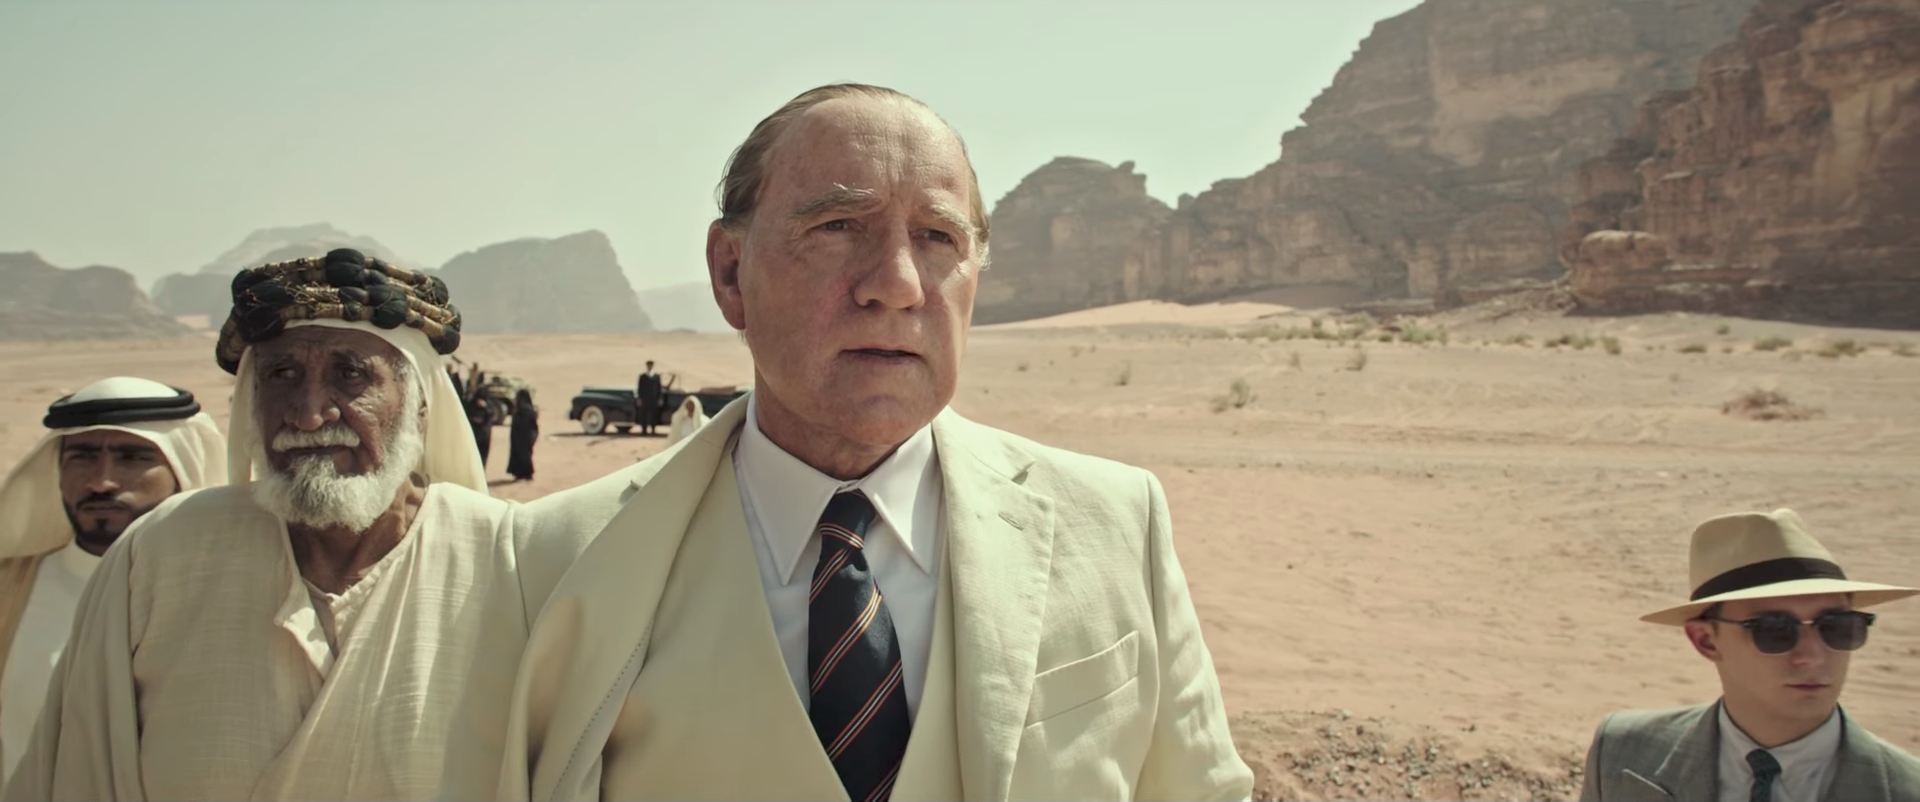 All the pictures in world kevin spacey role did